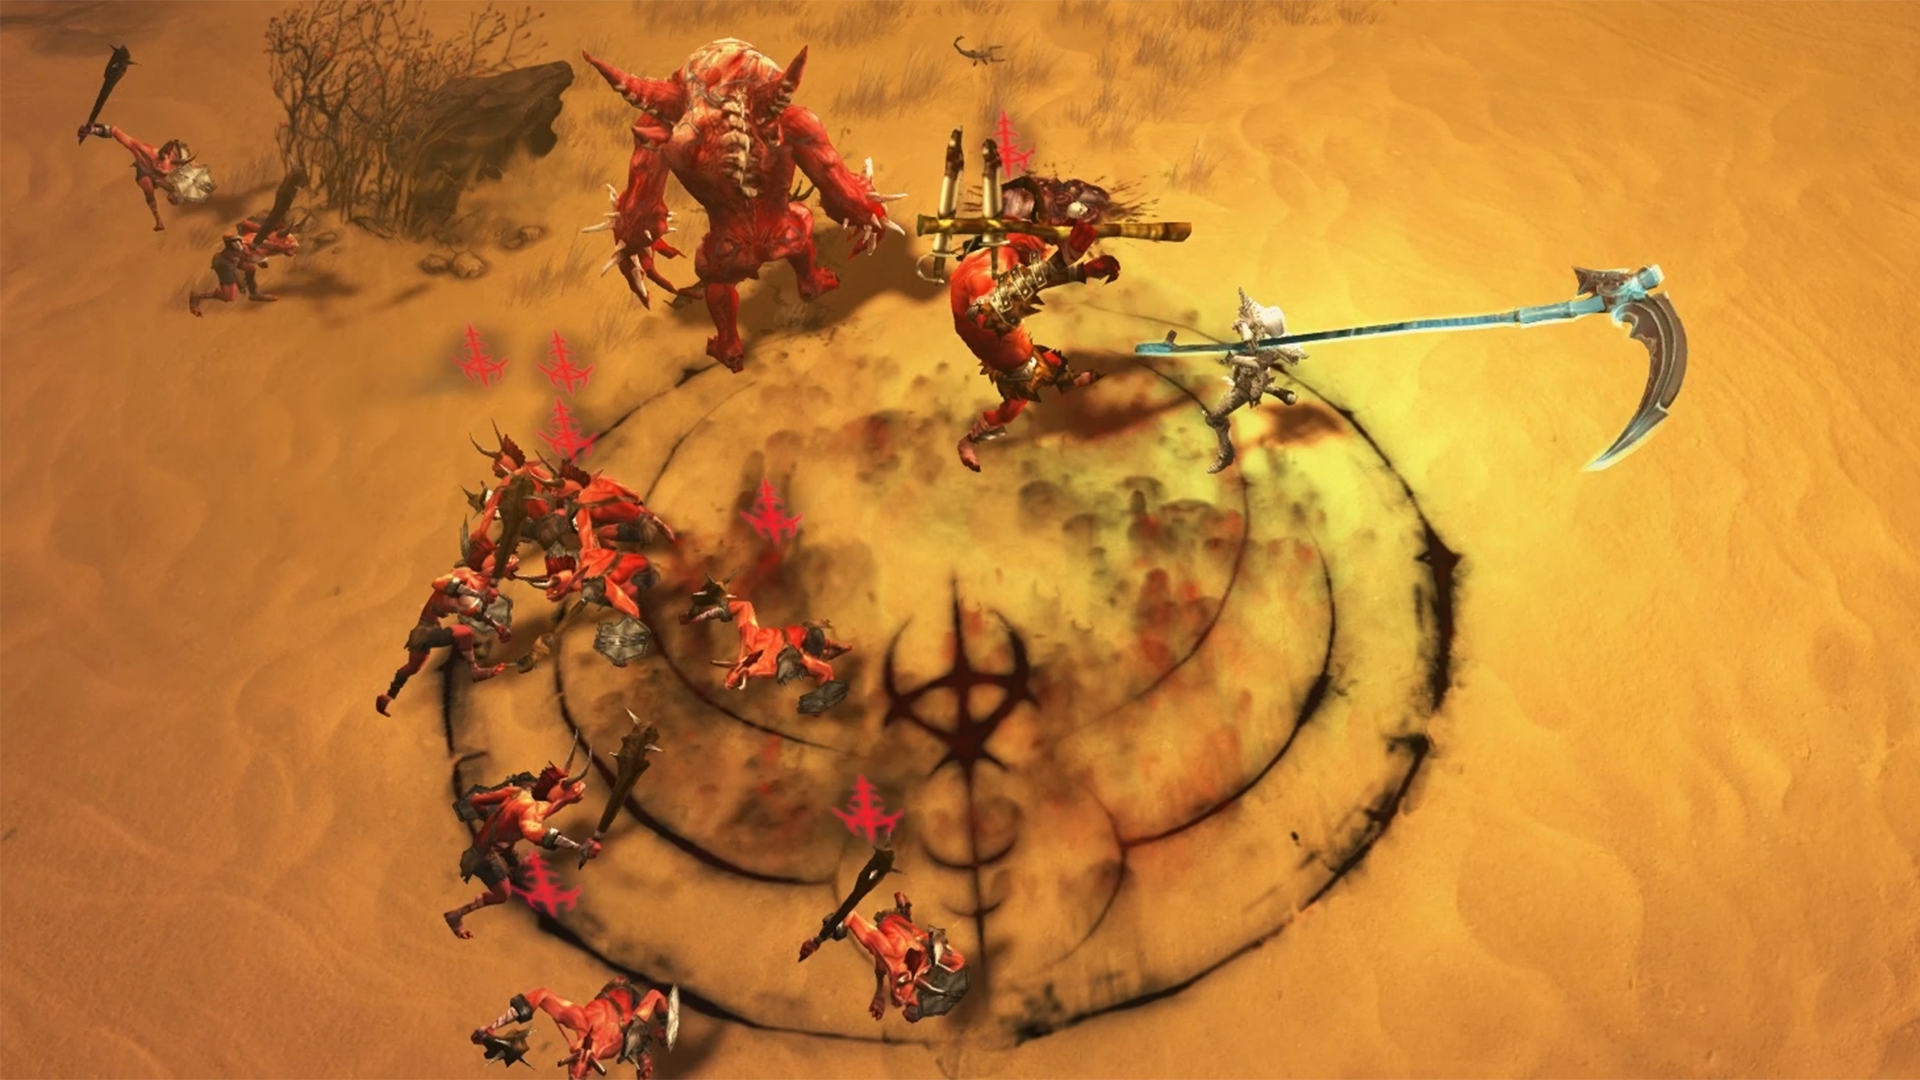 Diablo 3's Necromancer Delivers an Orgy of Corpse Explosions